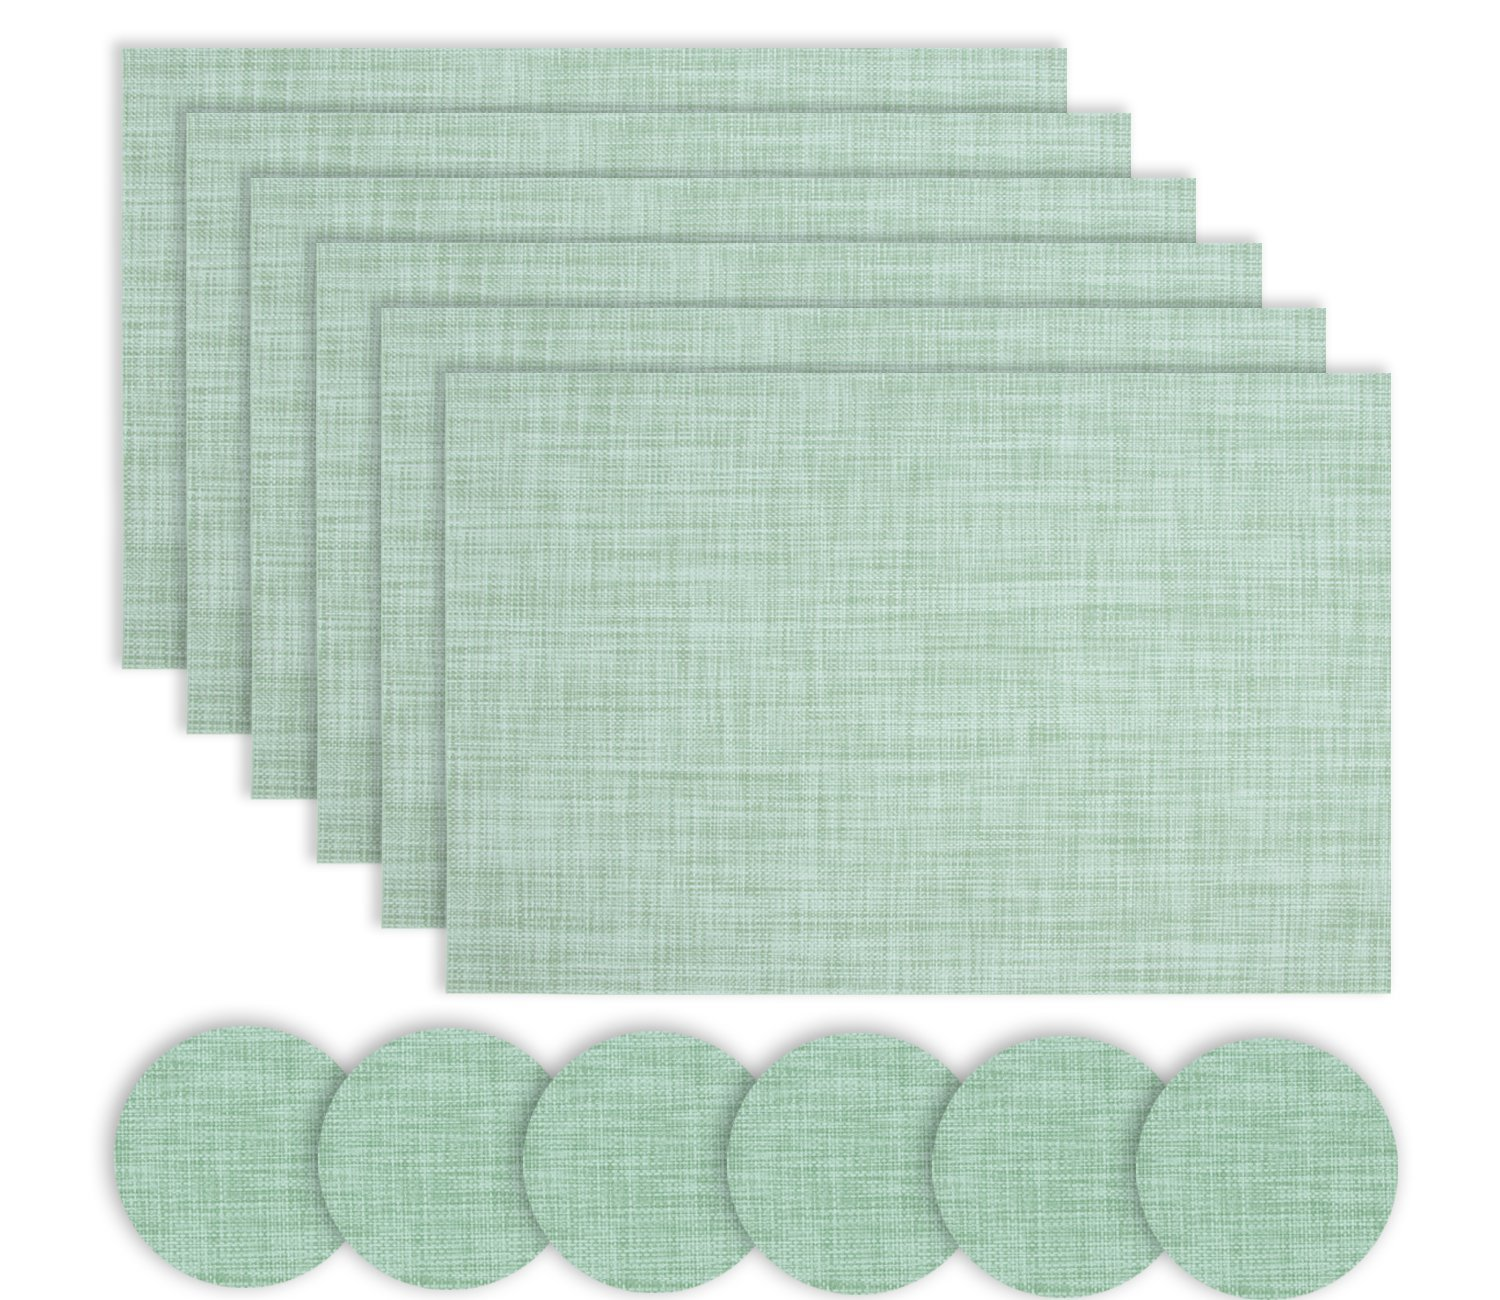 Homcomoda Vinyl Placemats set of 4 PVC Tablemats Washable Stain-resistant Place Mats Woven for Dinning Room